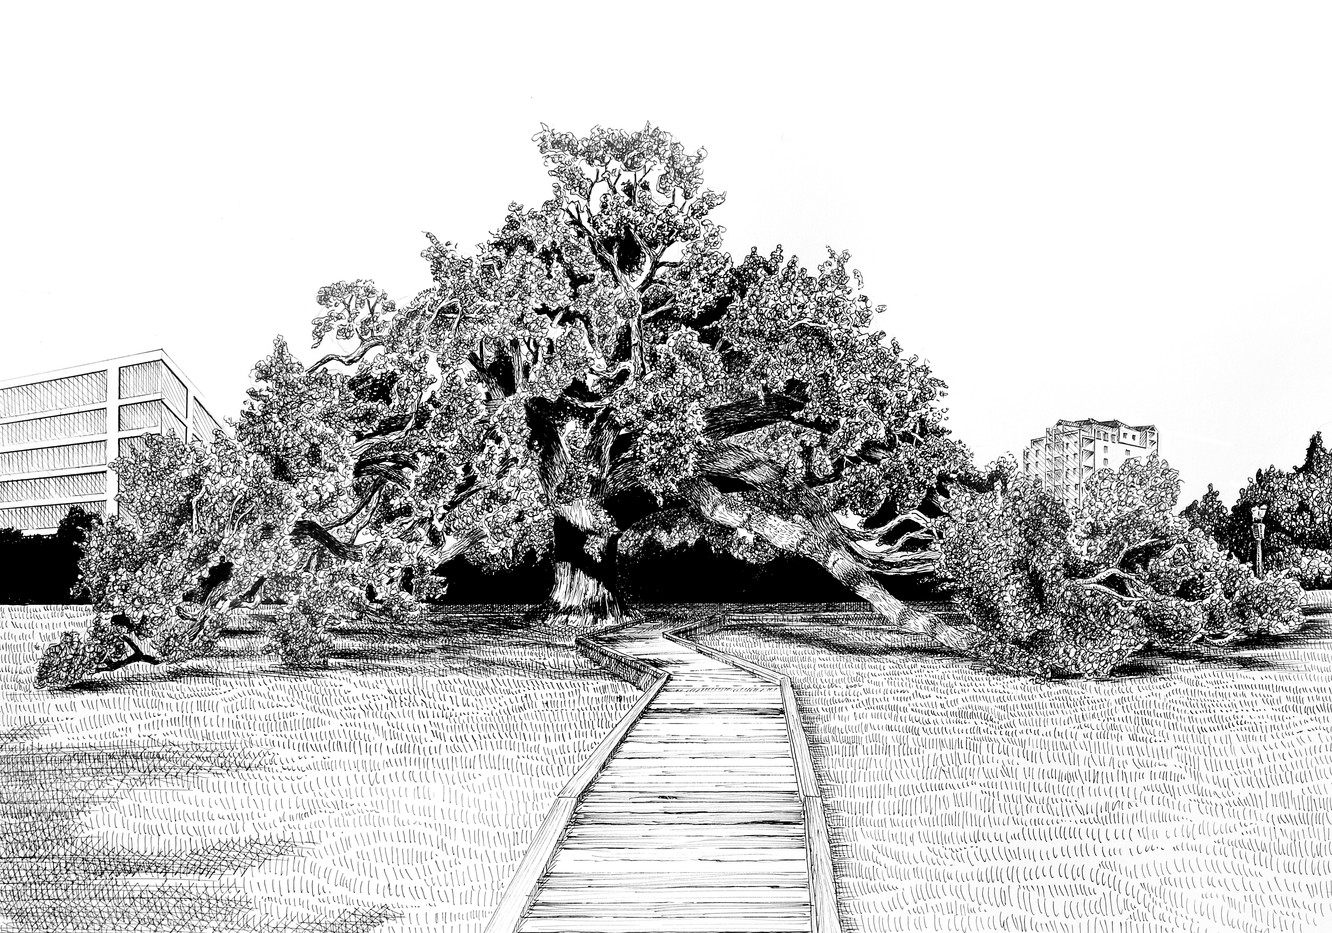 pen and ink illustration of the historical Treaty Oak tree in Jacksonville